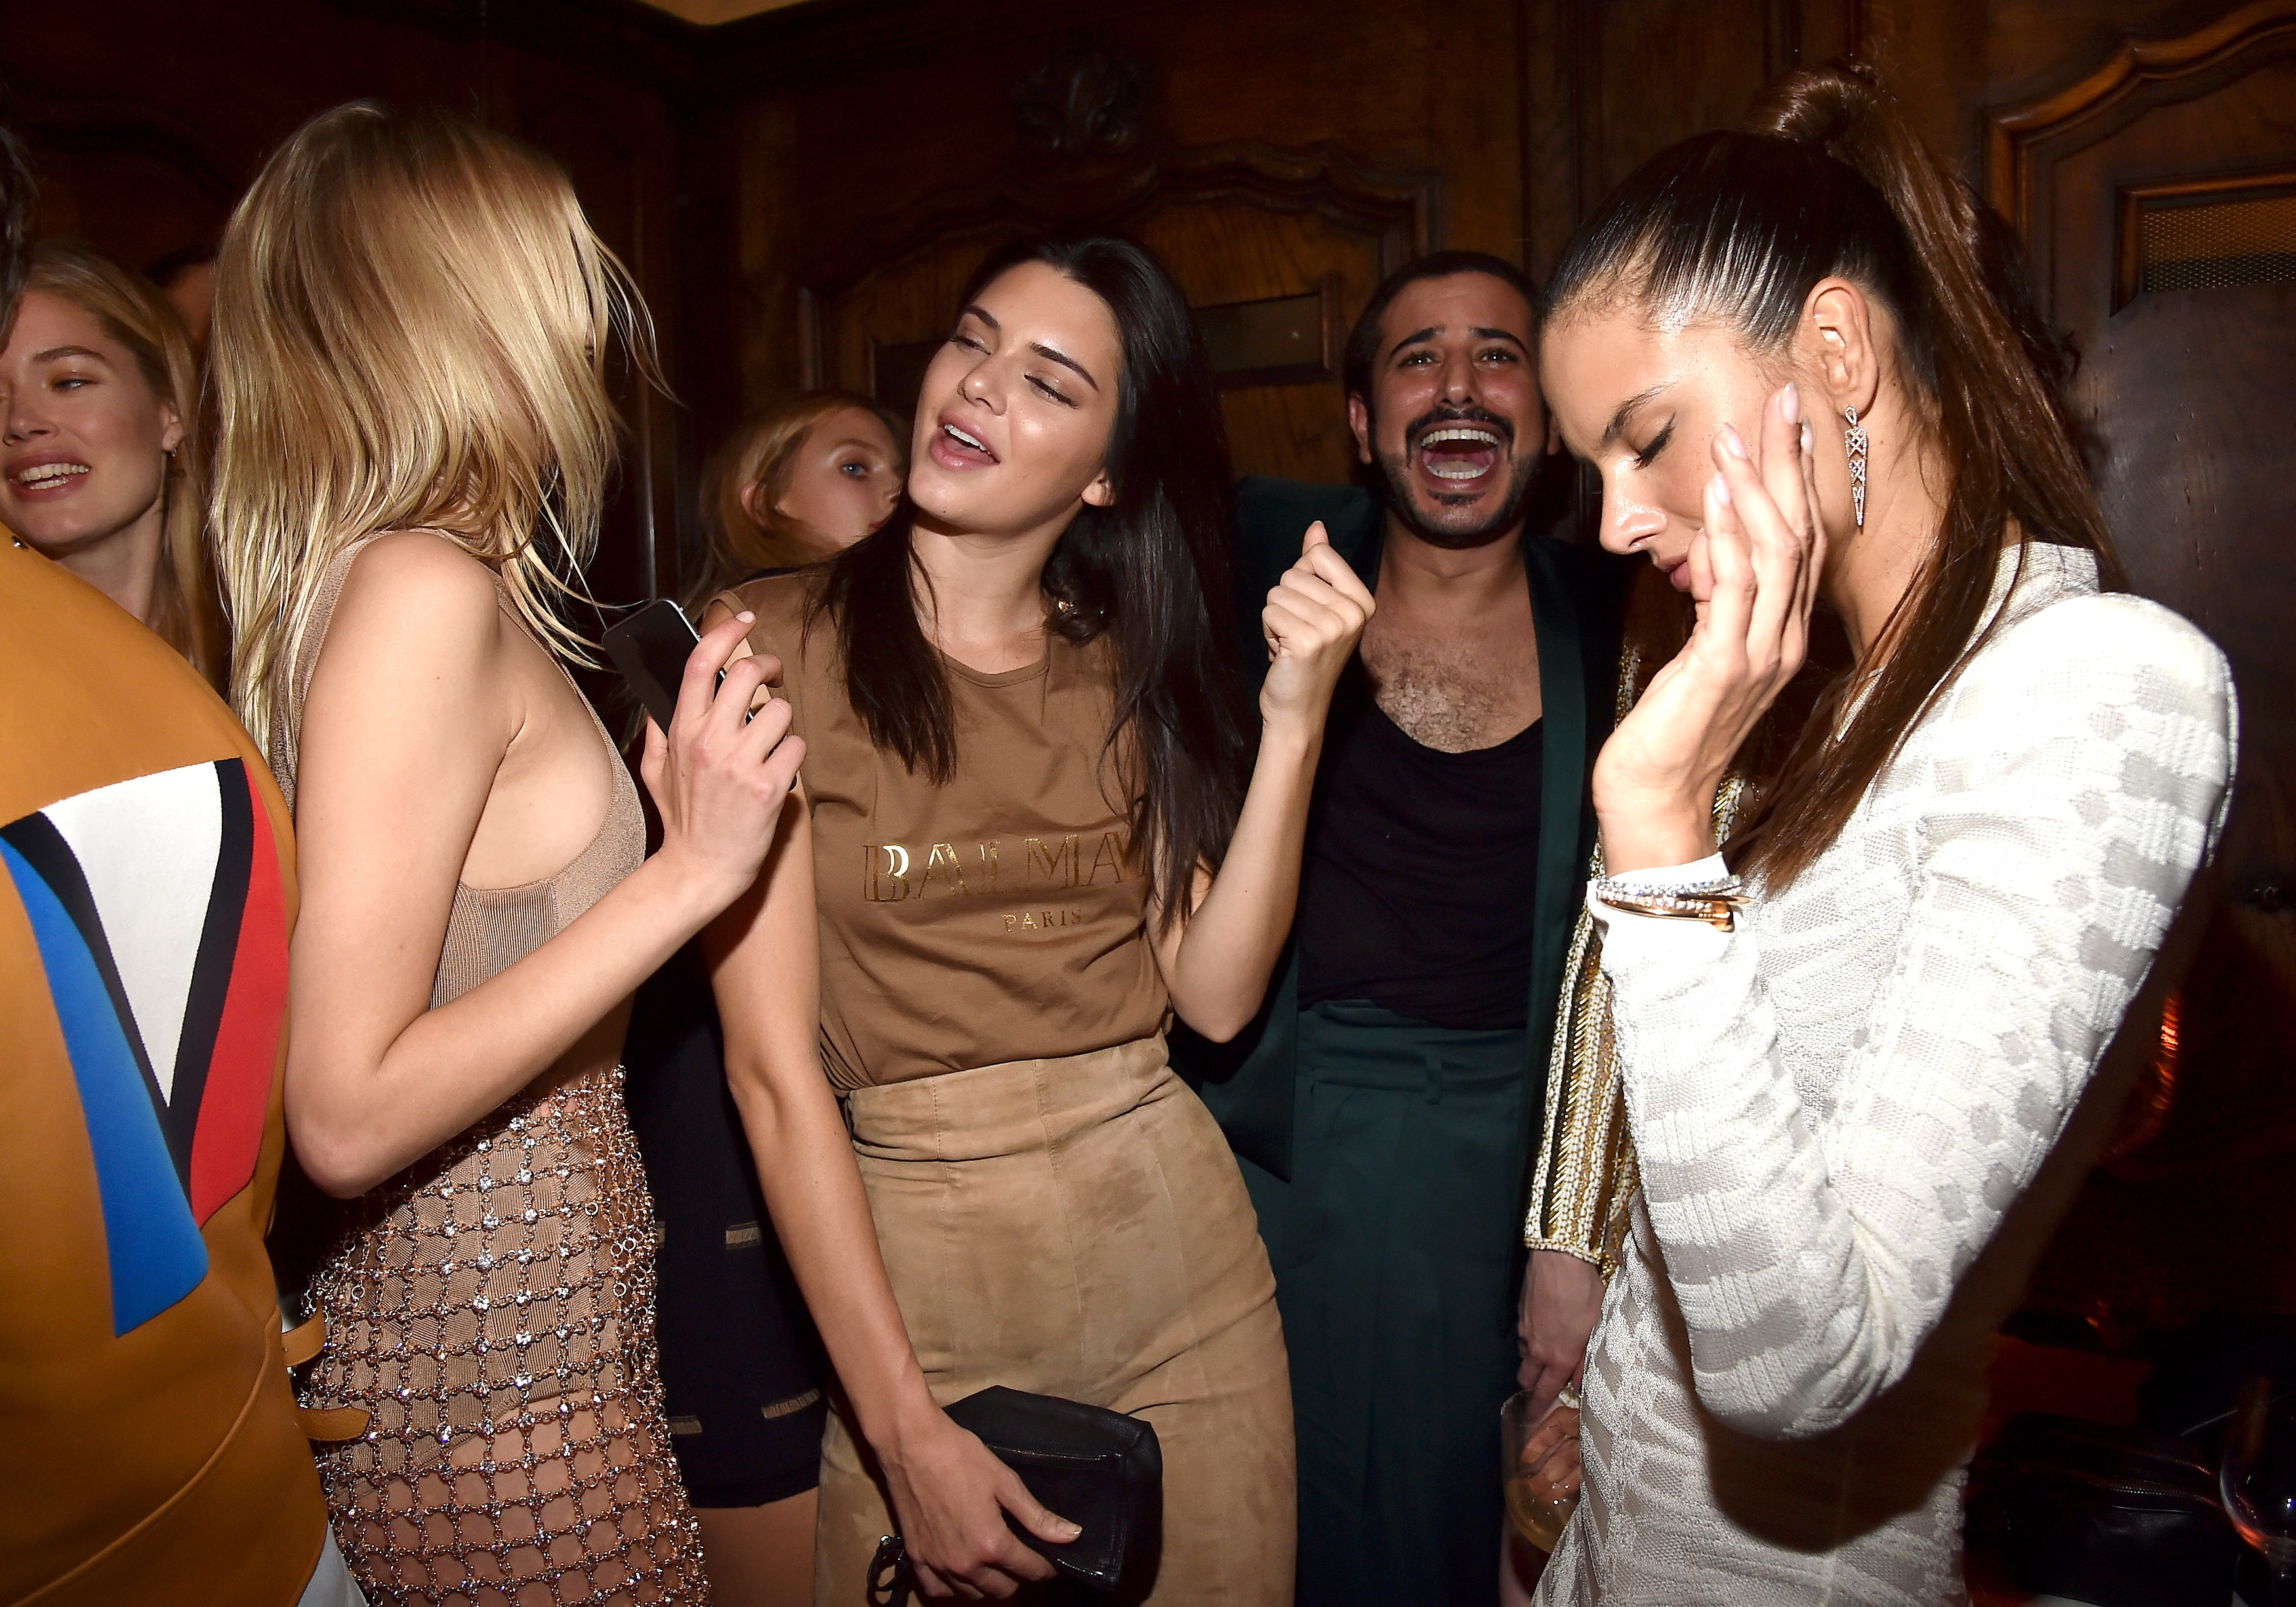 celebrity party Pictures, Images & Photos | Photobucket